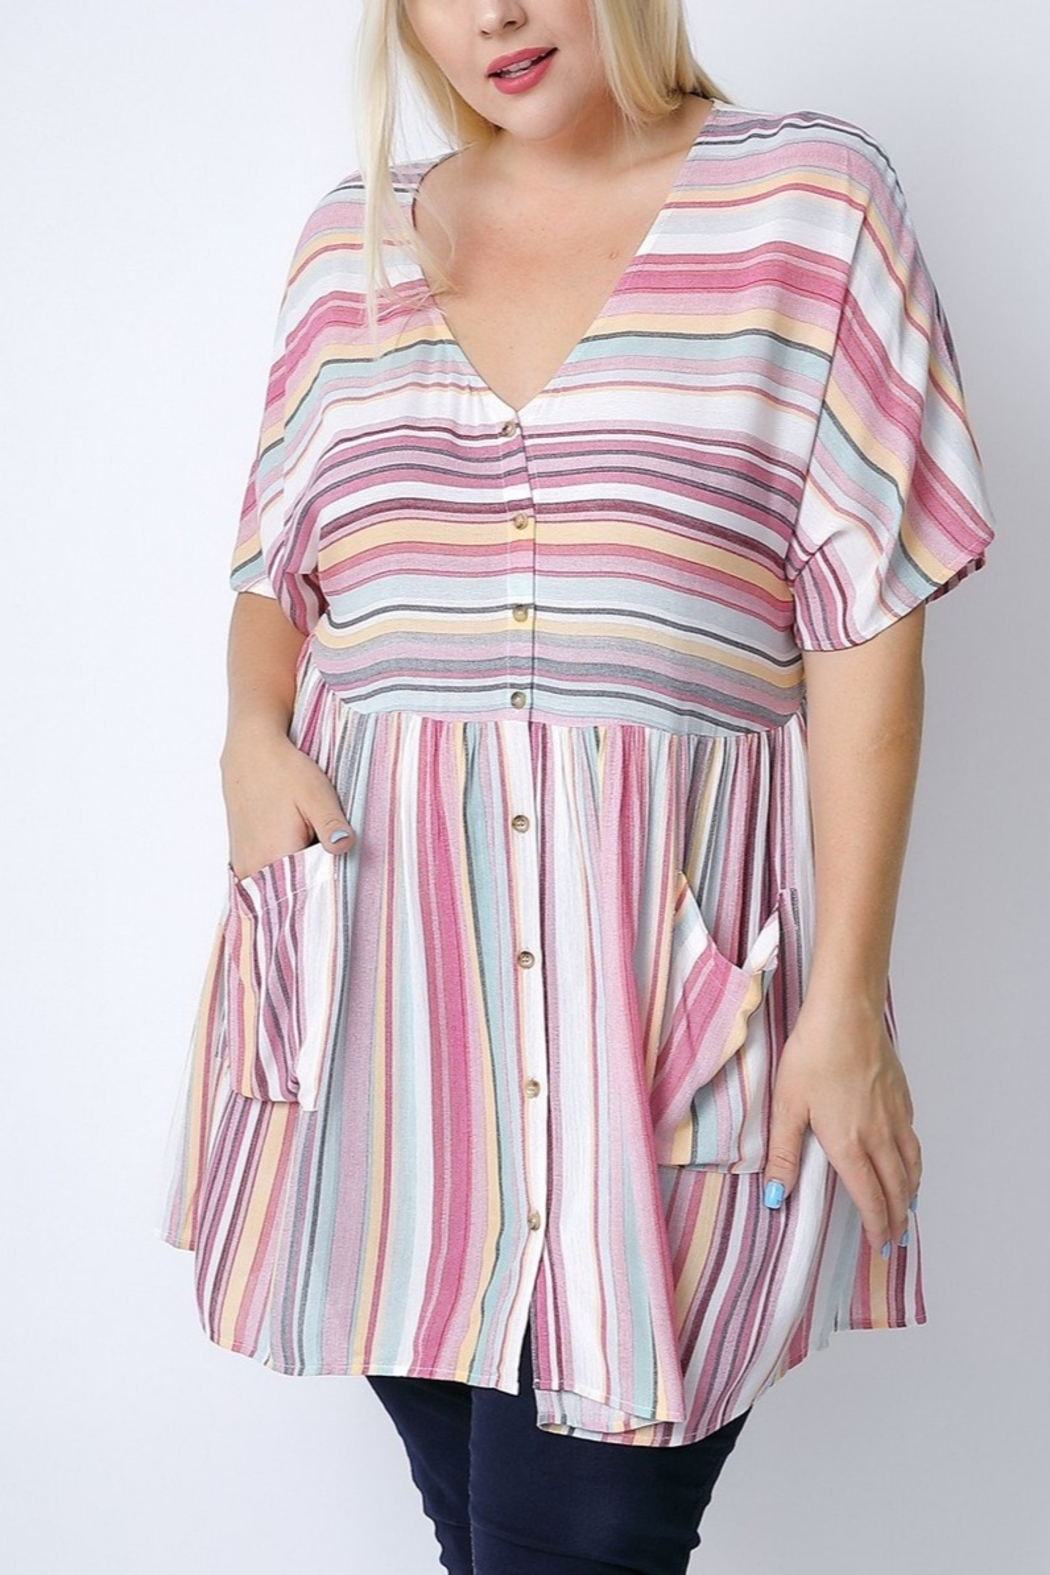 Lyn -Maree's Vertical Stripe Tunic - Main Image